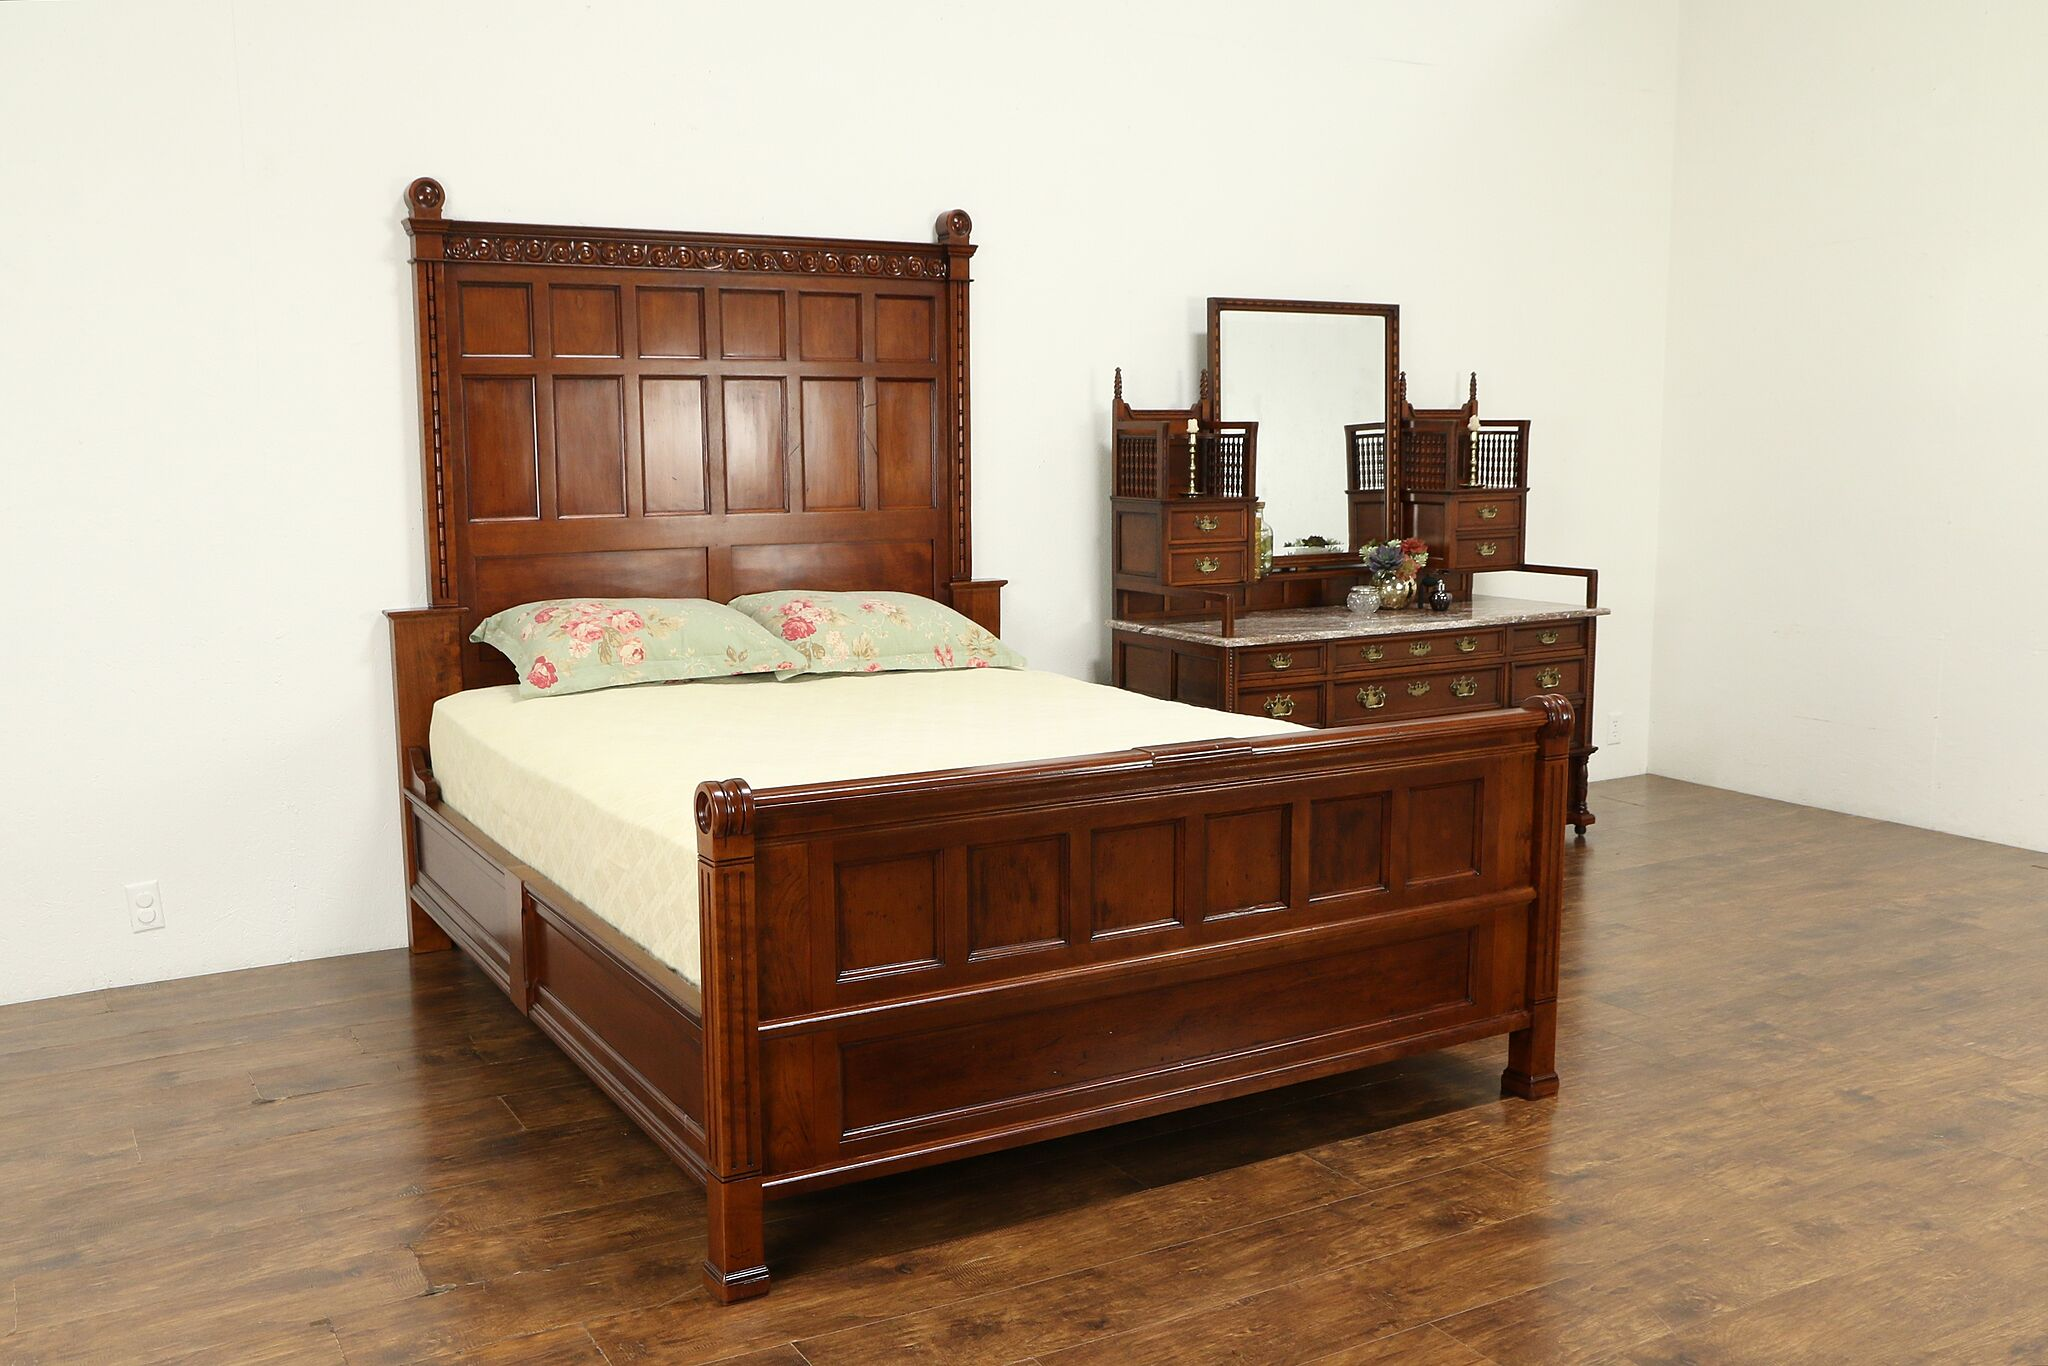 Carved Cherry Antique Bedroom Set Queen Size Bed Marble Top Dresser 31732 Harp Gallery Antiques Furniture